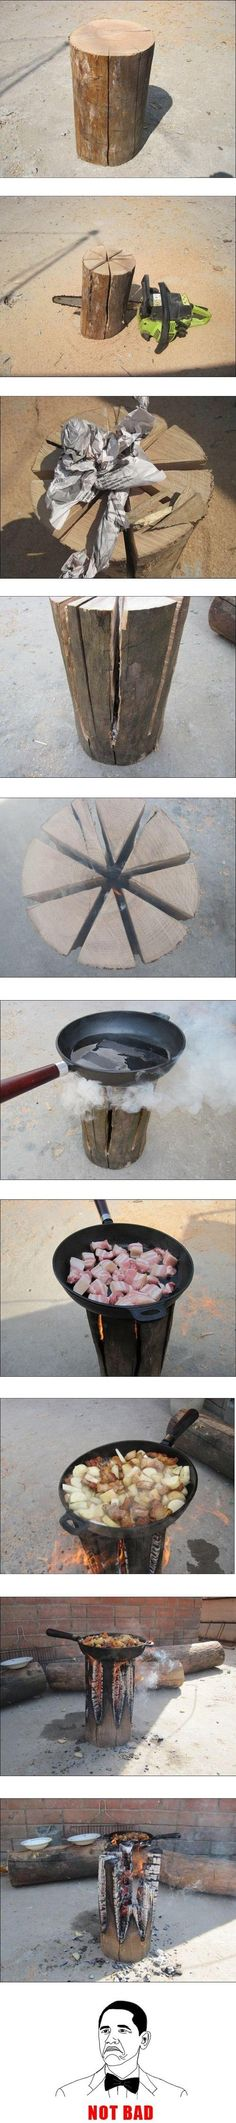 Cooking lvl: Not Bad  - funny pictures #funnypictures